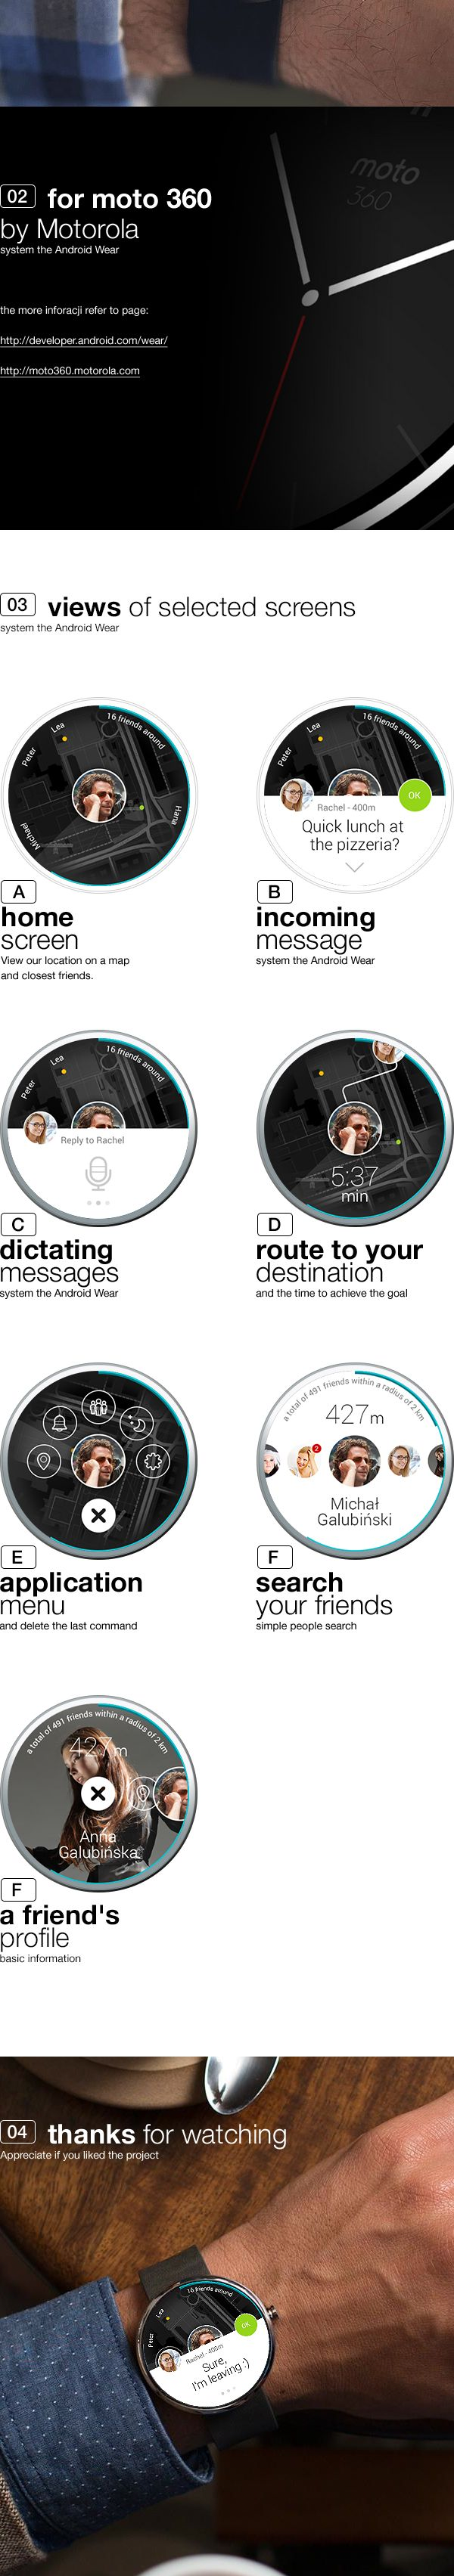 application concept for android wear by Michal Galubinski, via Behance